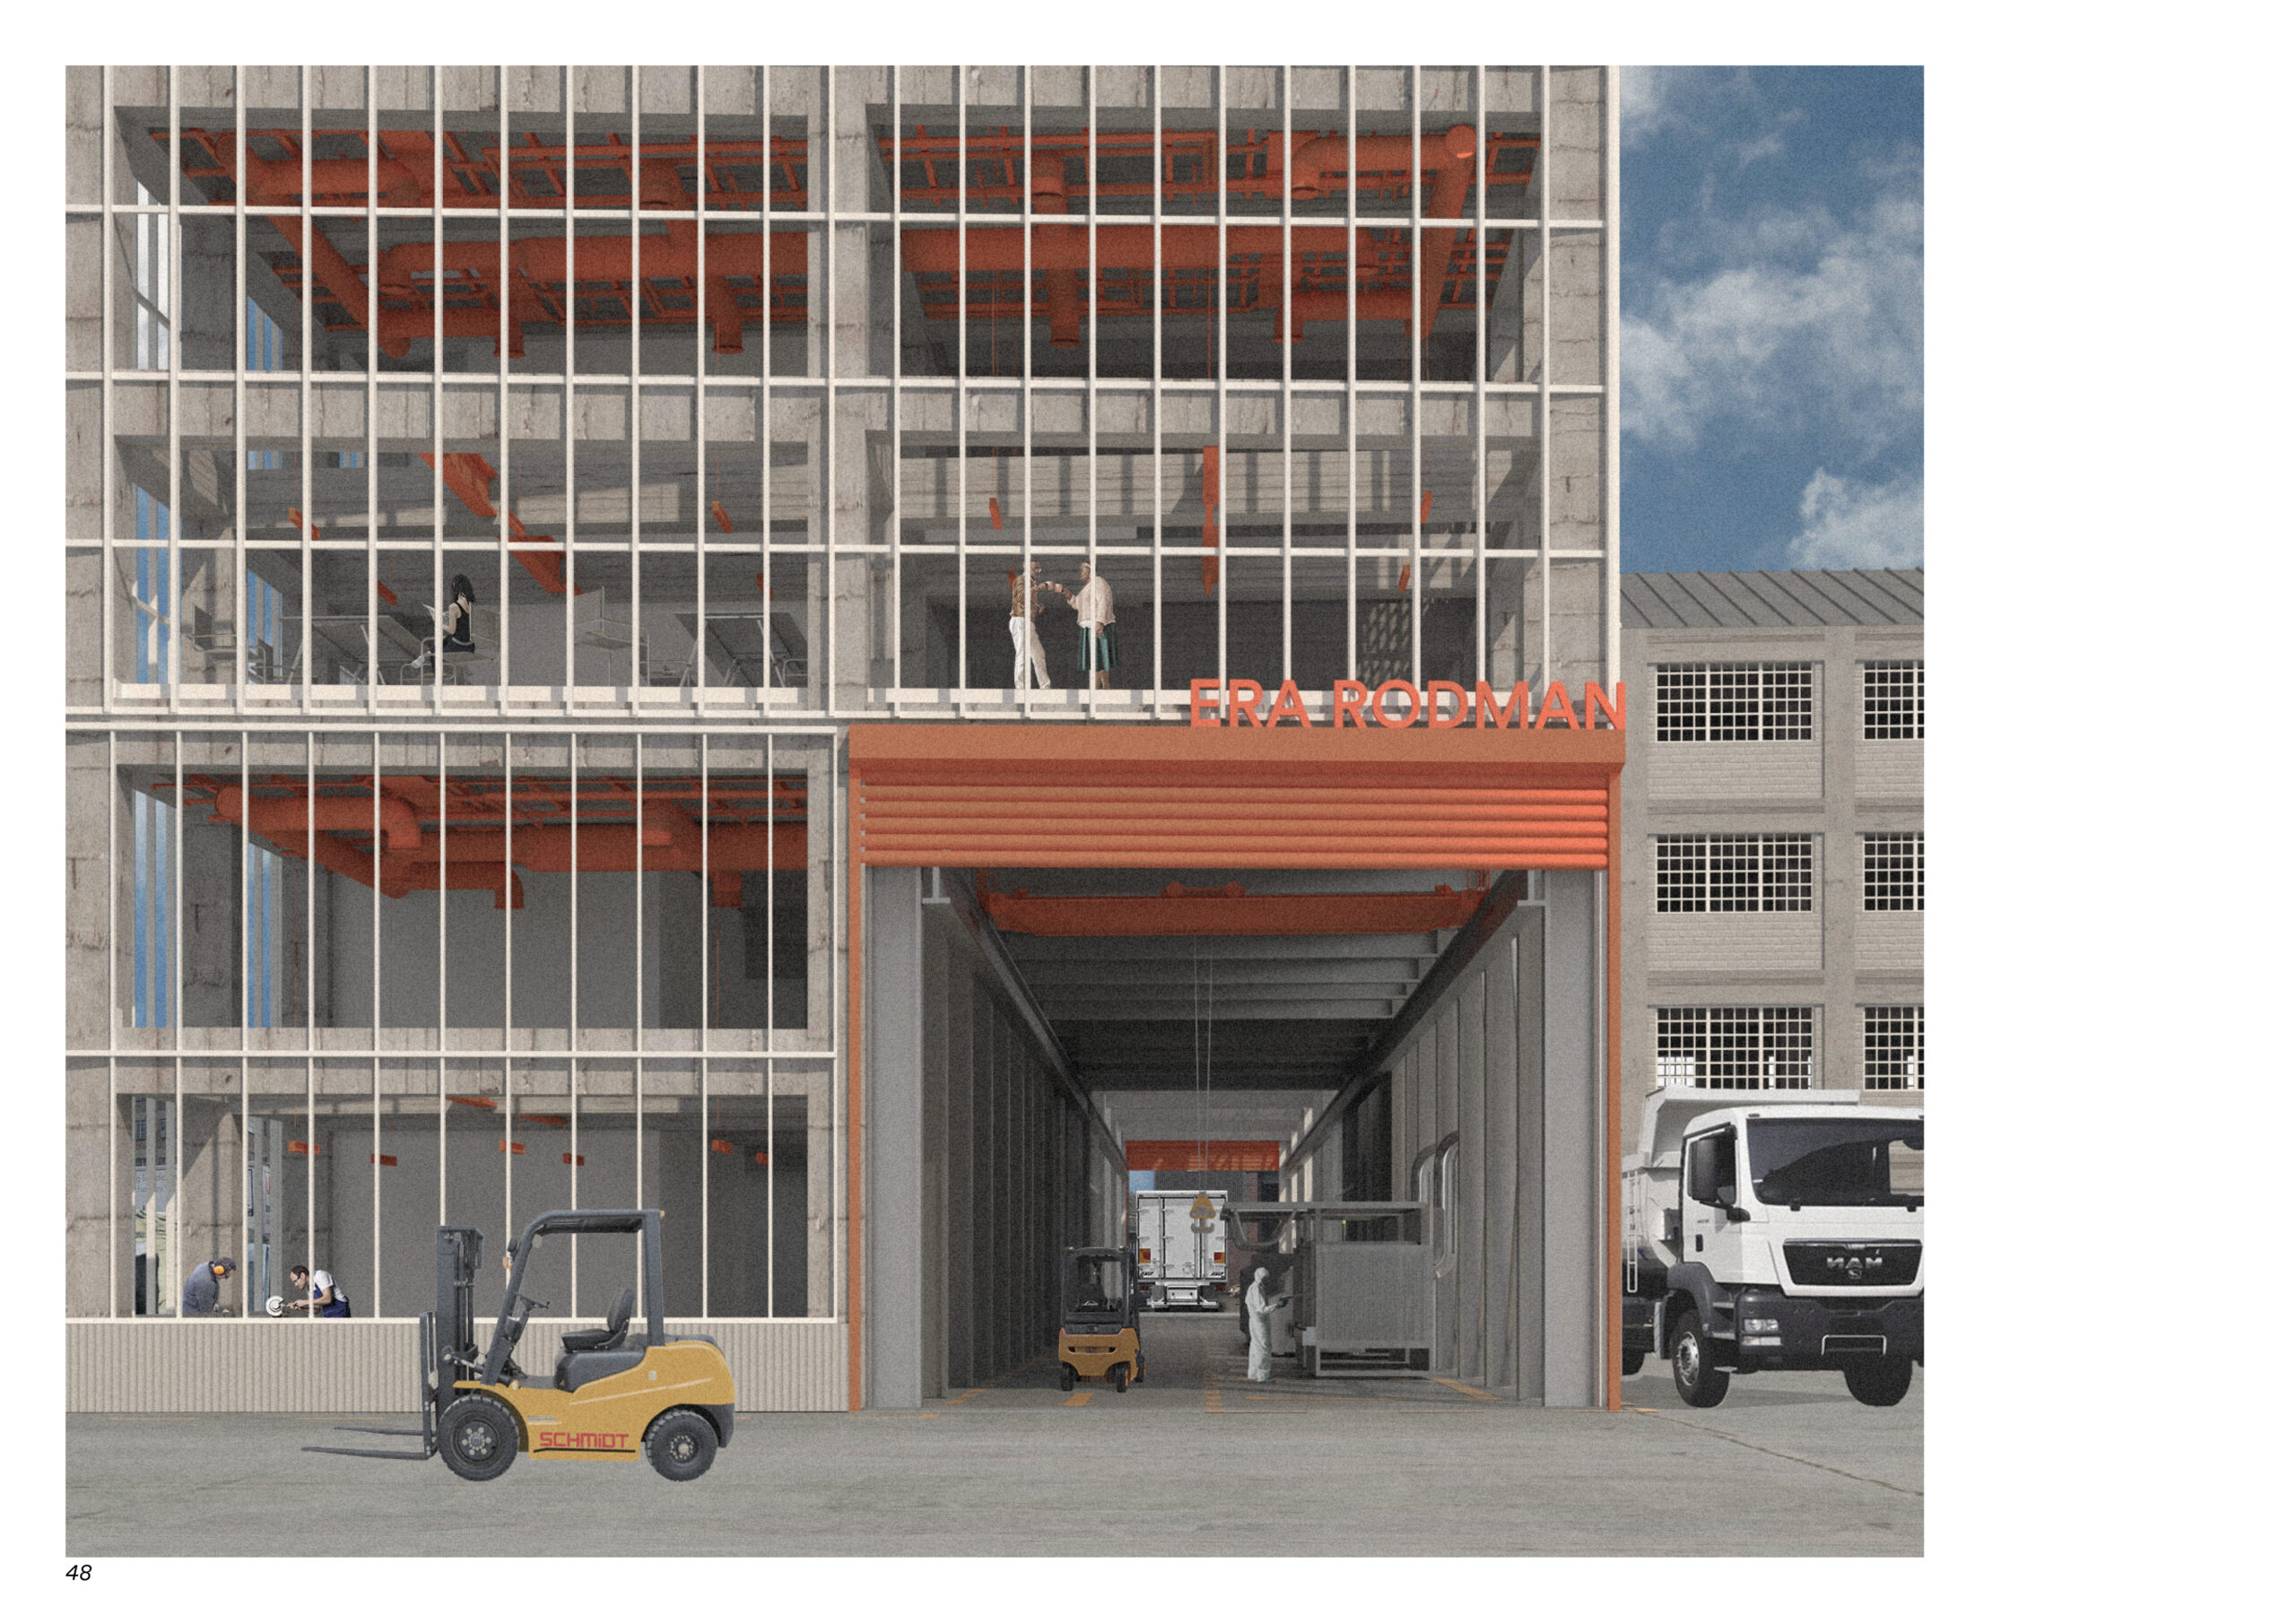 a render of the entrance of the metal works which is orange. behind is made of glass so we can see into the space